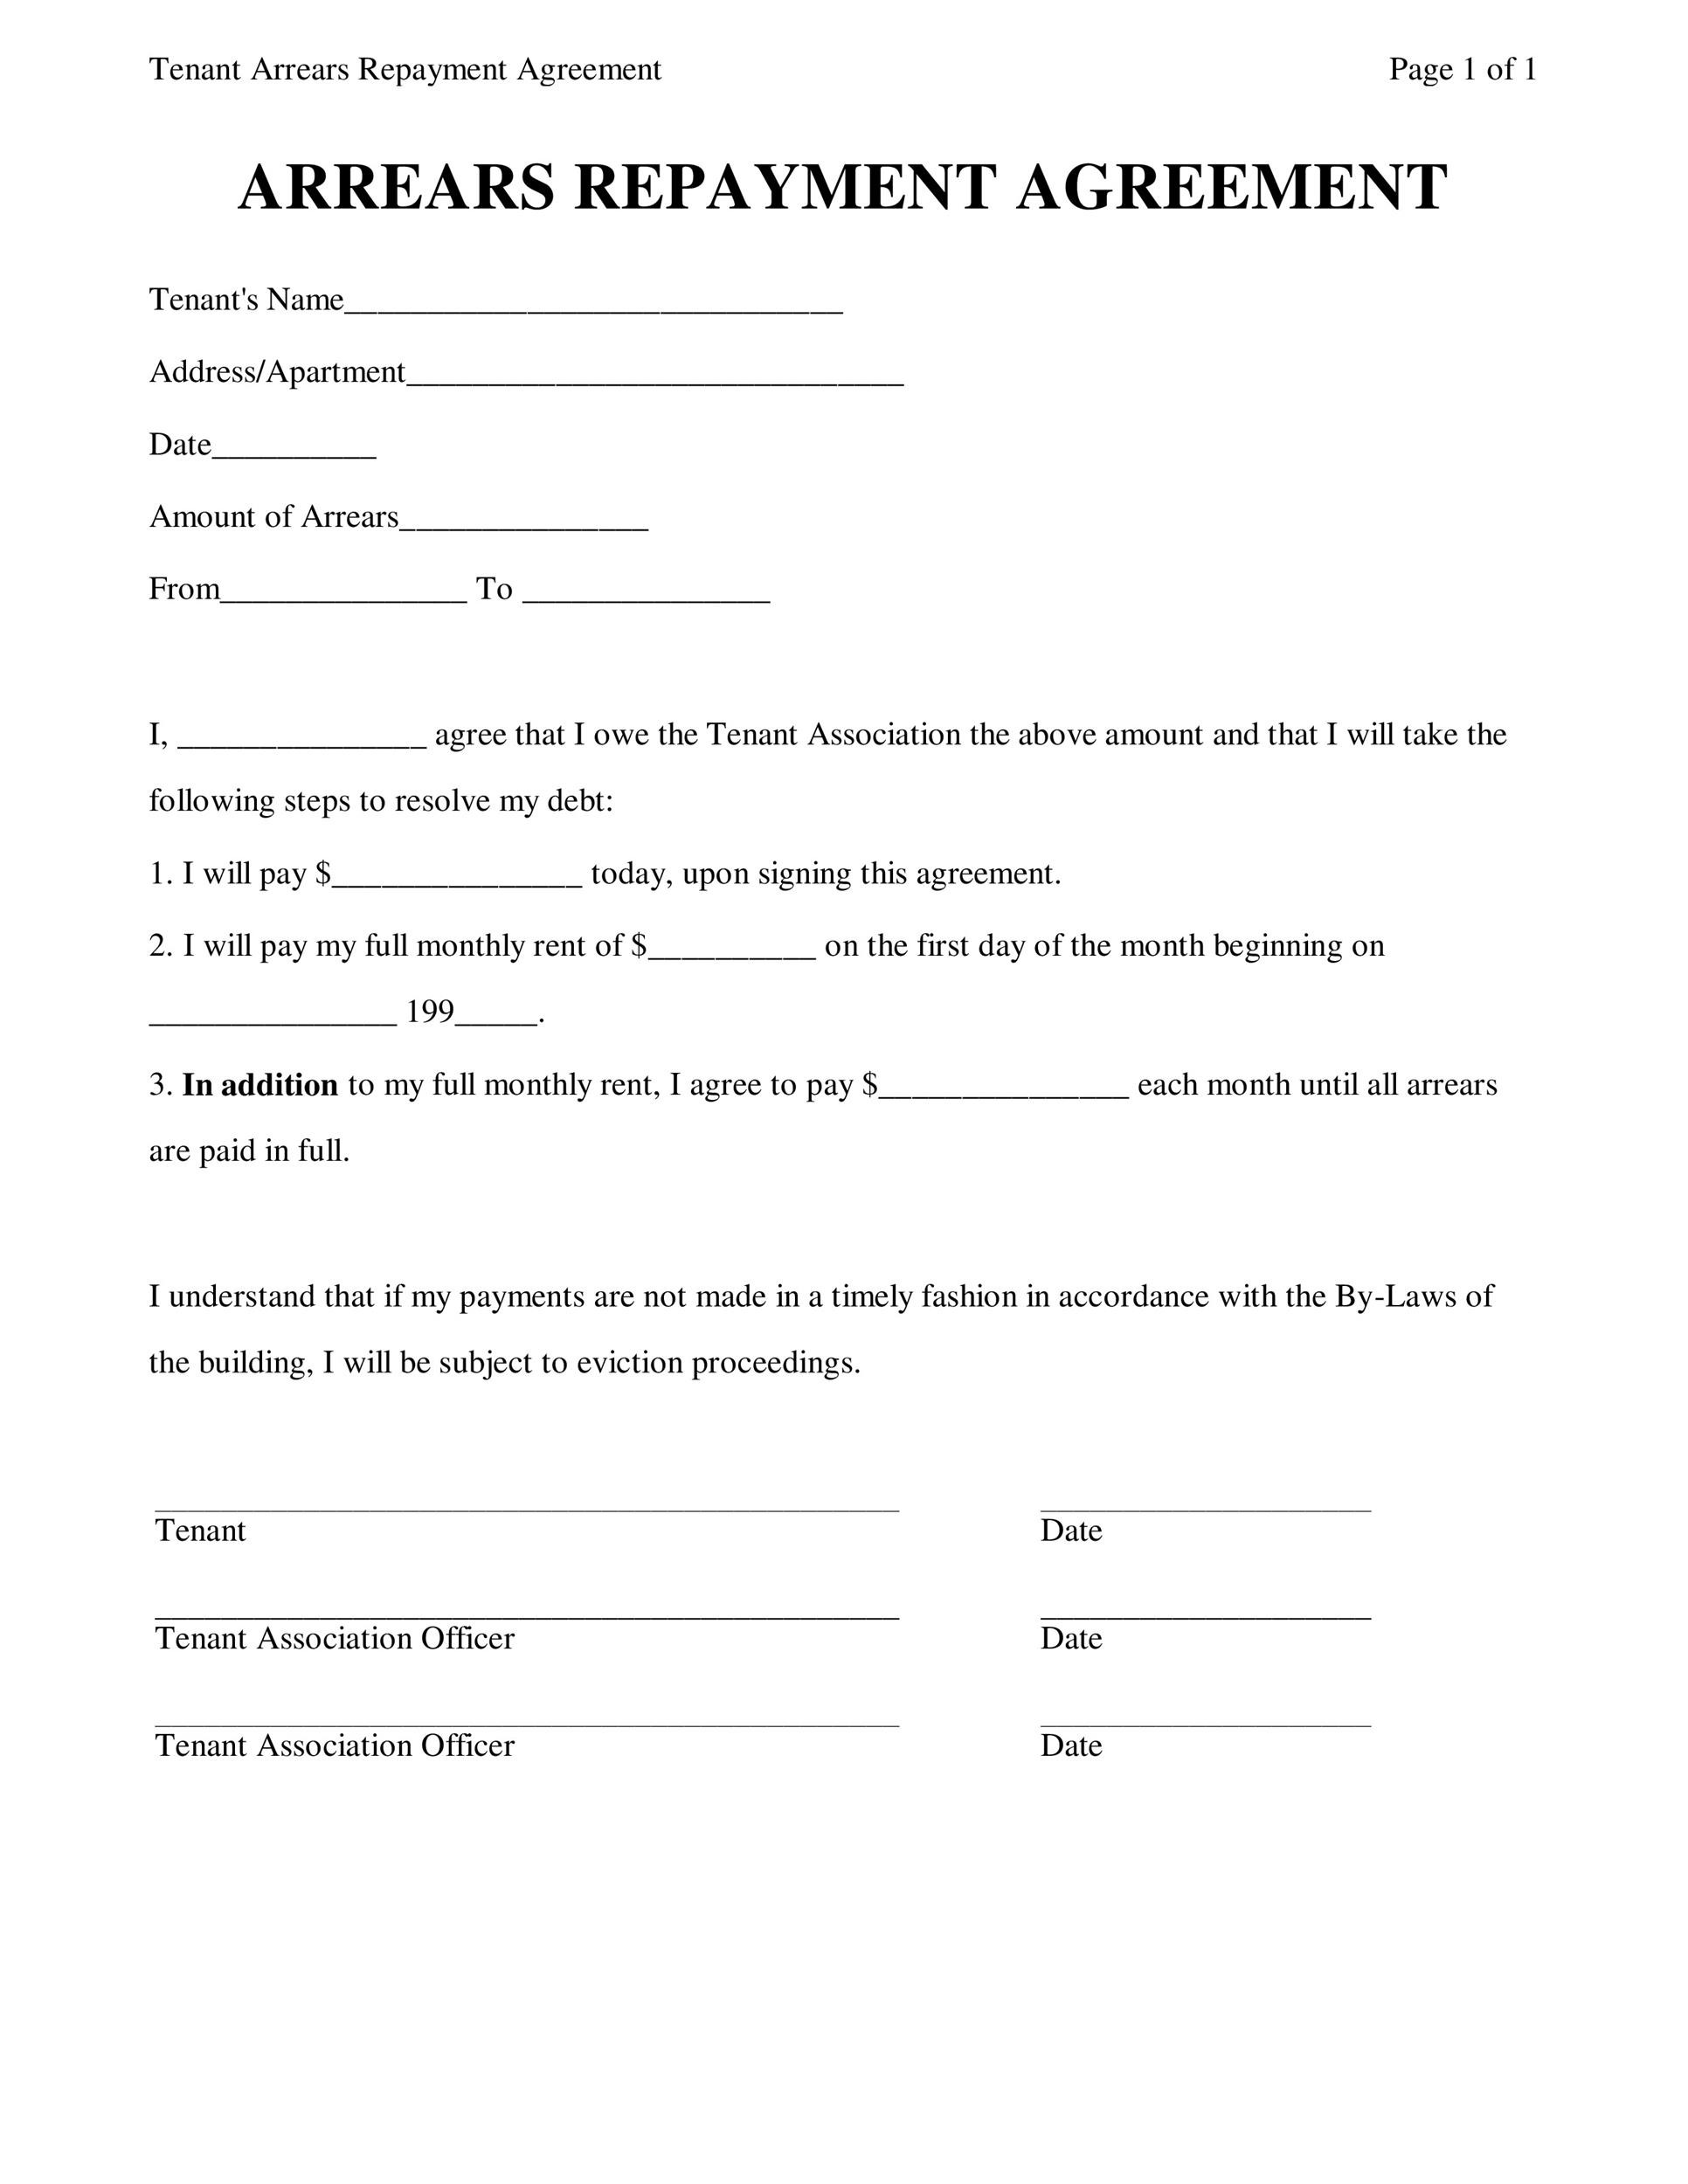 printable loan agreement template 34 - Sample Lending Contract